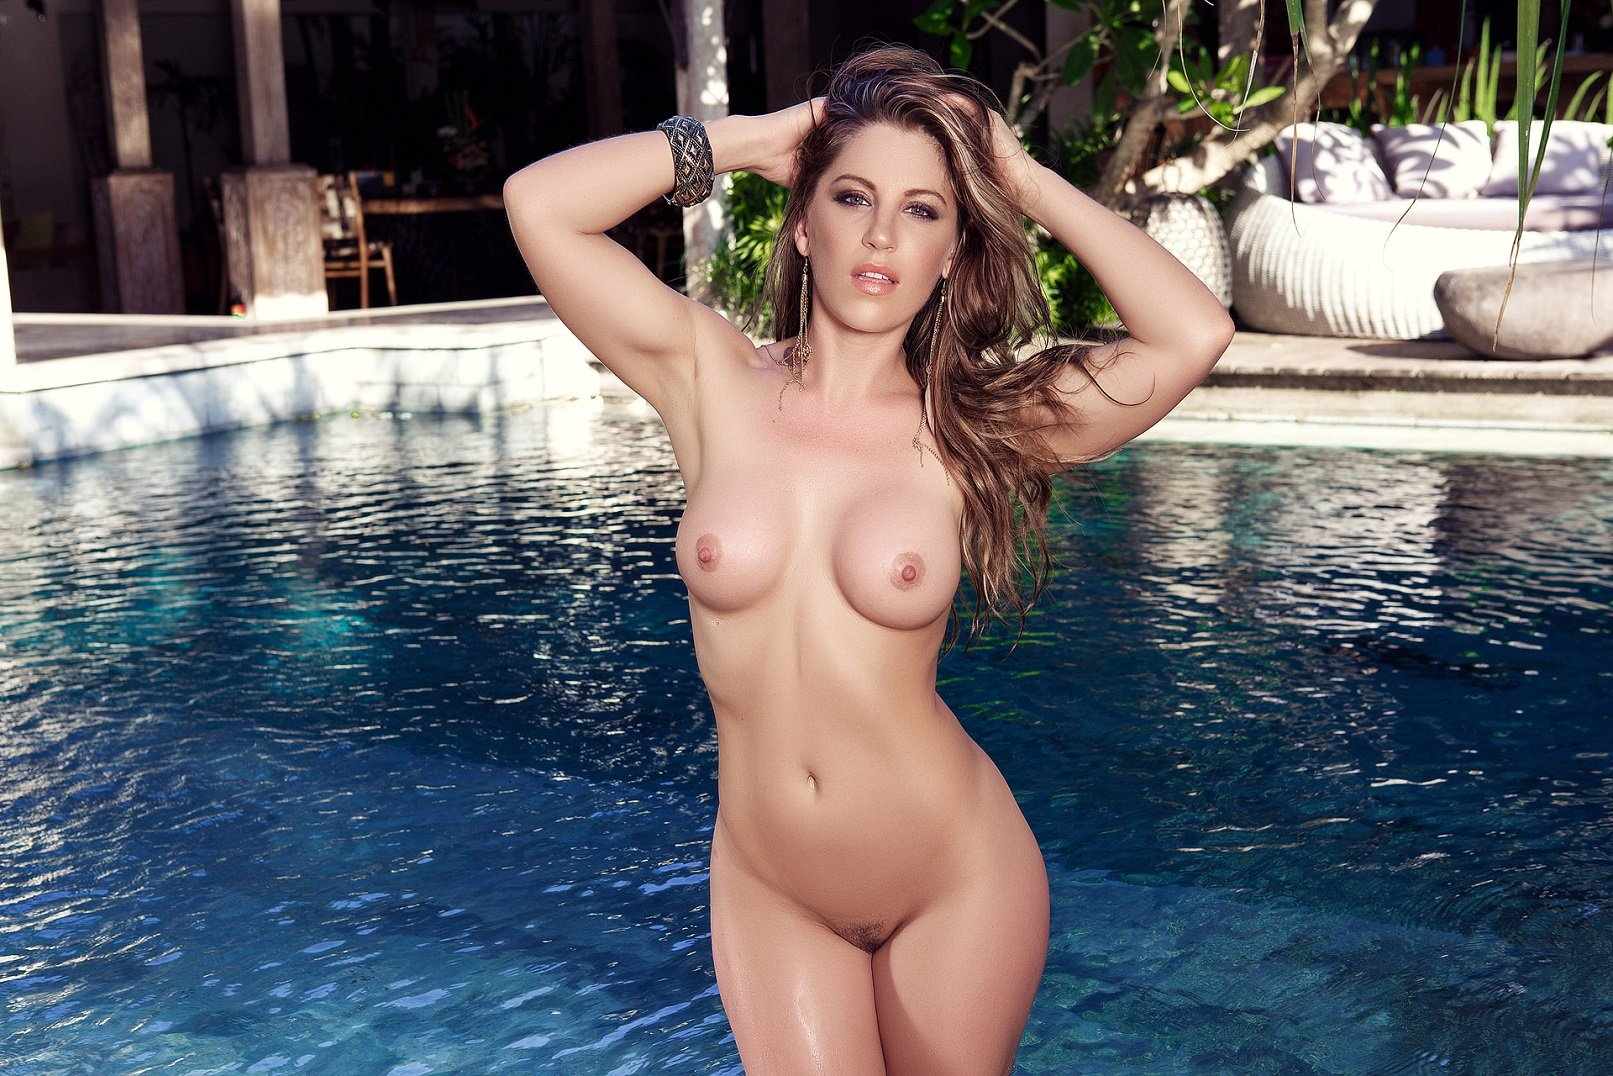 Camoflage panty play gianna michaels big dildo